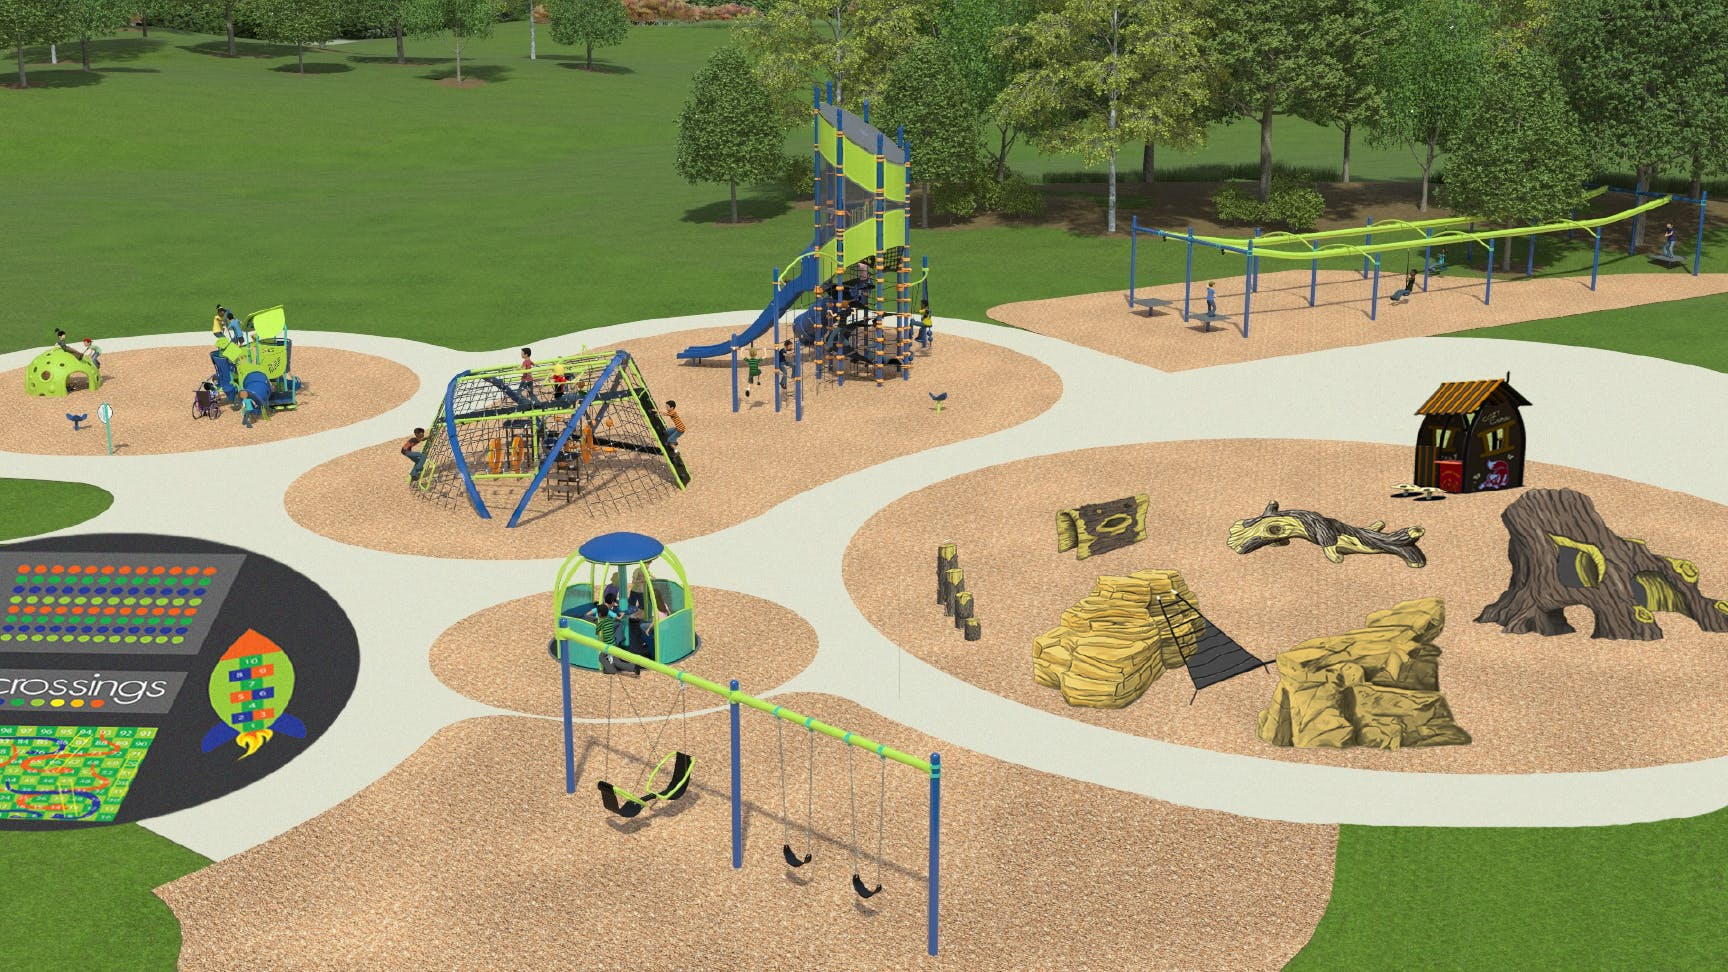 Crossings Playground Renderings